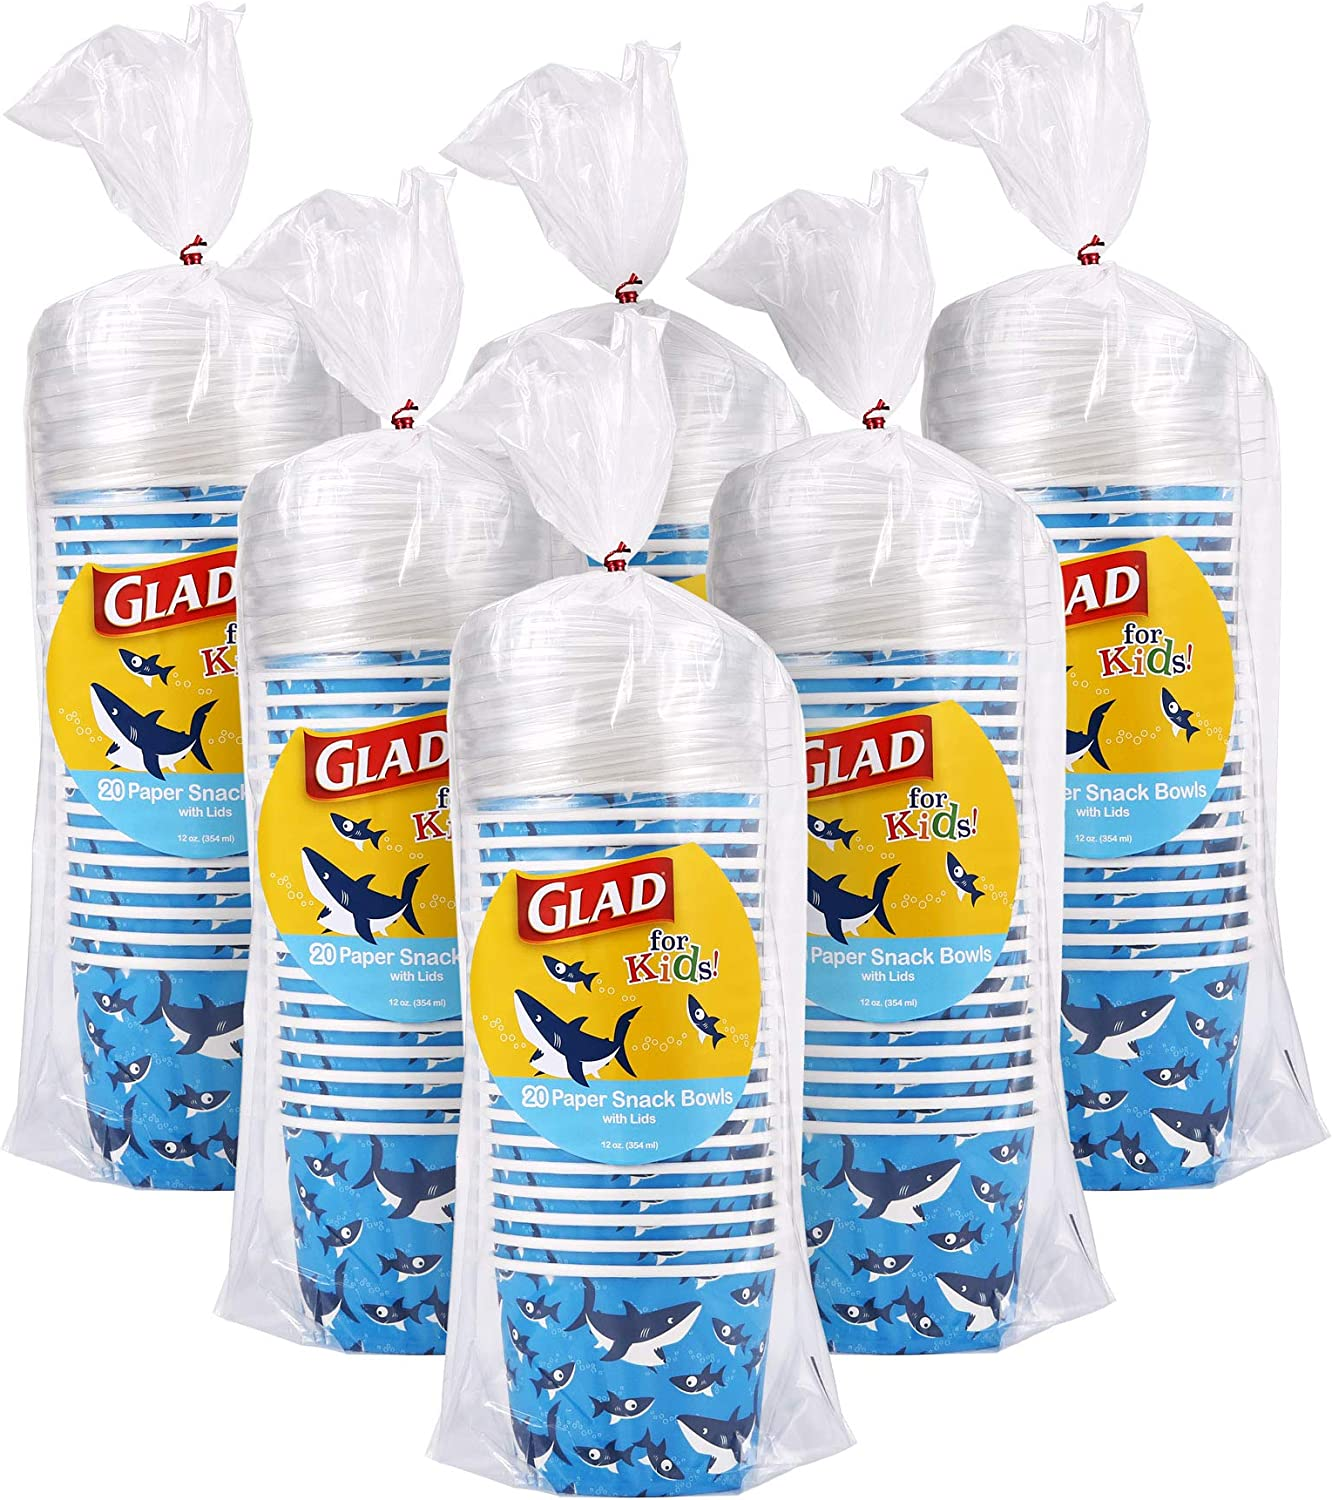 Glad for Kids Sharks 12 oz Paper Snack Bowls with Lids, Disposable Snack Cups with Lids, 12 oz, Heavy Duty Disposable Soak Proof Microwavable Paper Bowls for Soup, Ice Cream, 20 Count (Pack of 6)